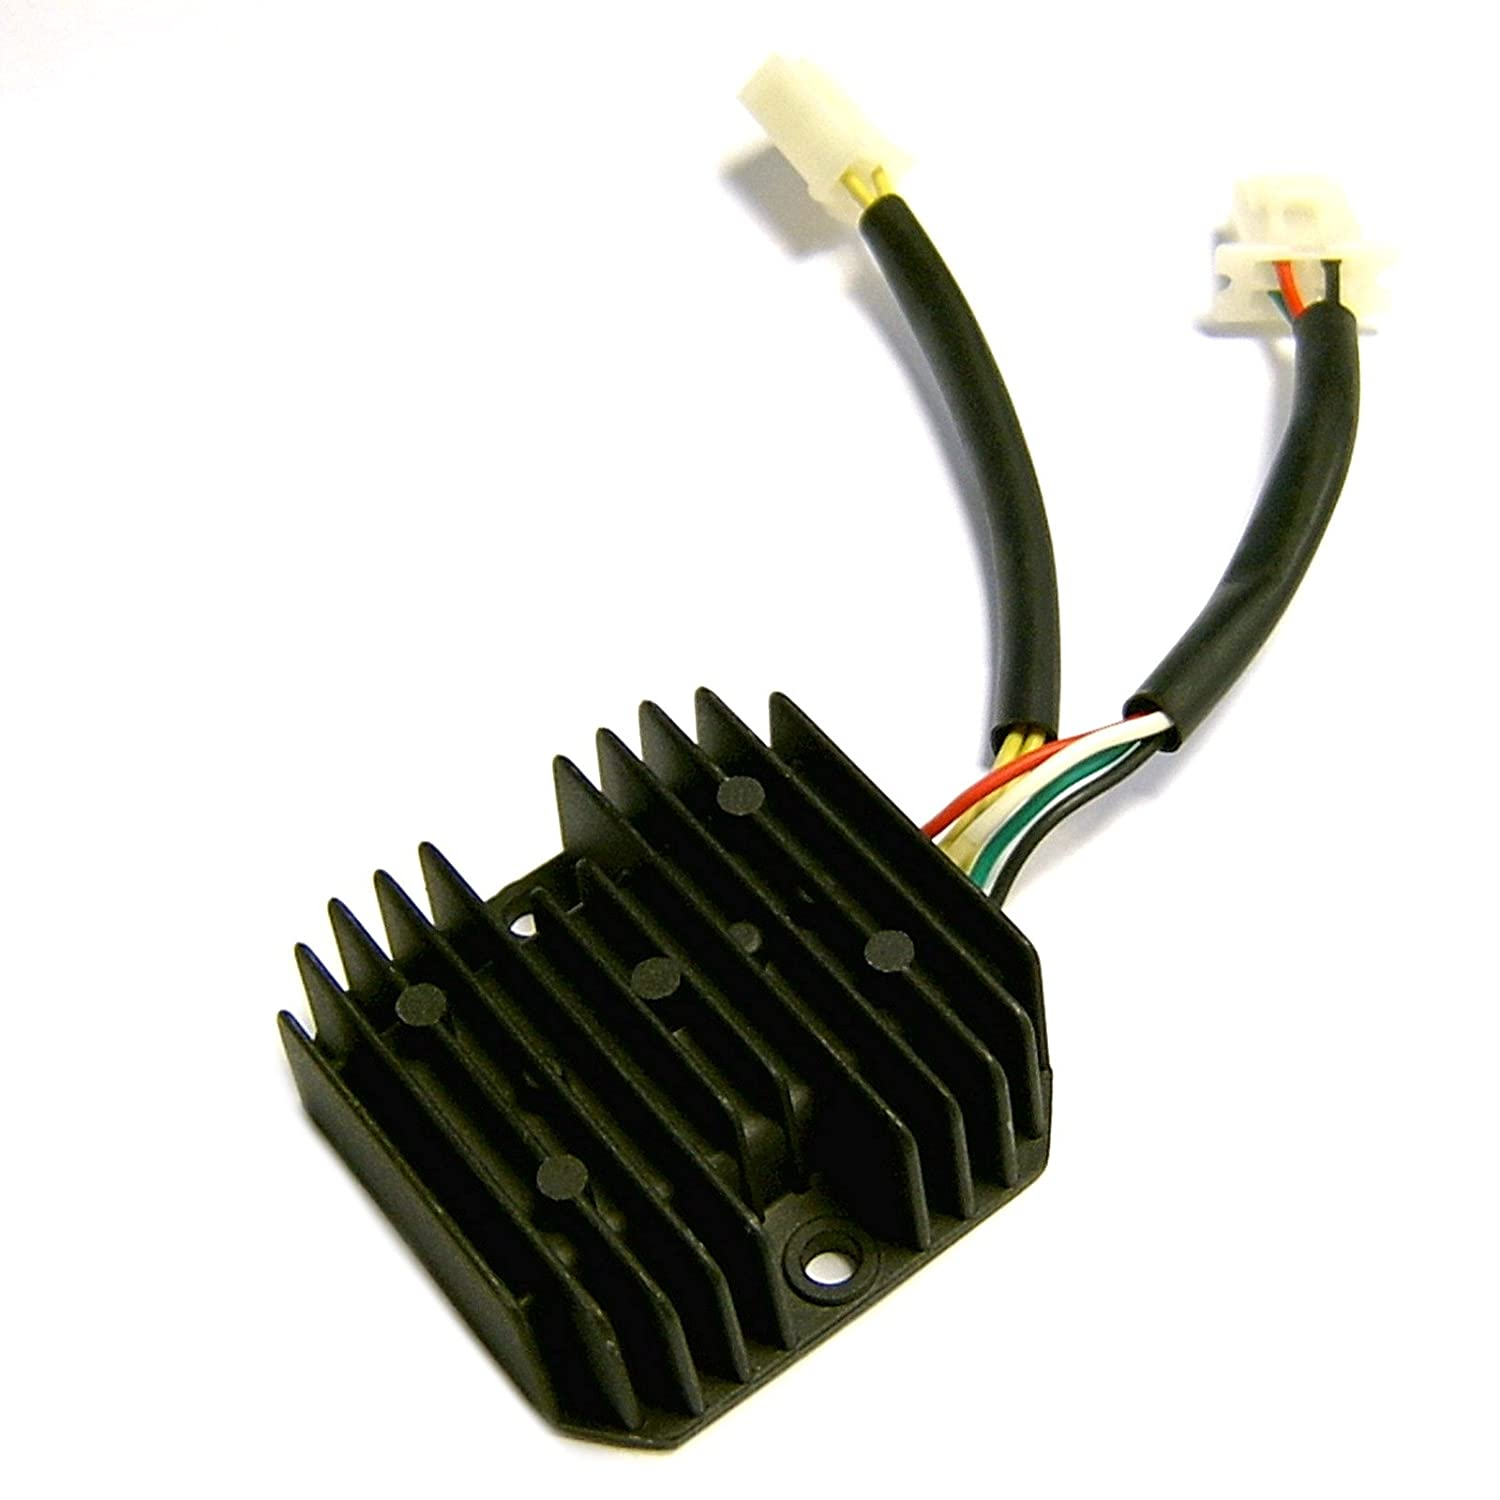 Oem Voltage Regulator Rectifier 12v 3 4 Pins In 2 Plugs For 11 Gy6 200cc Chinese Atv Wiring